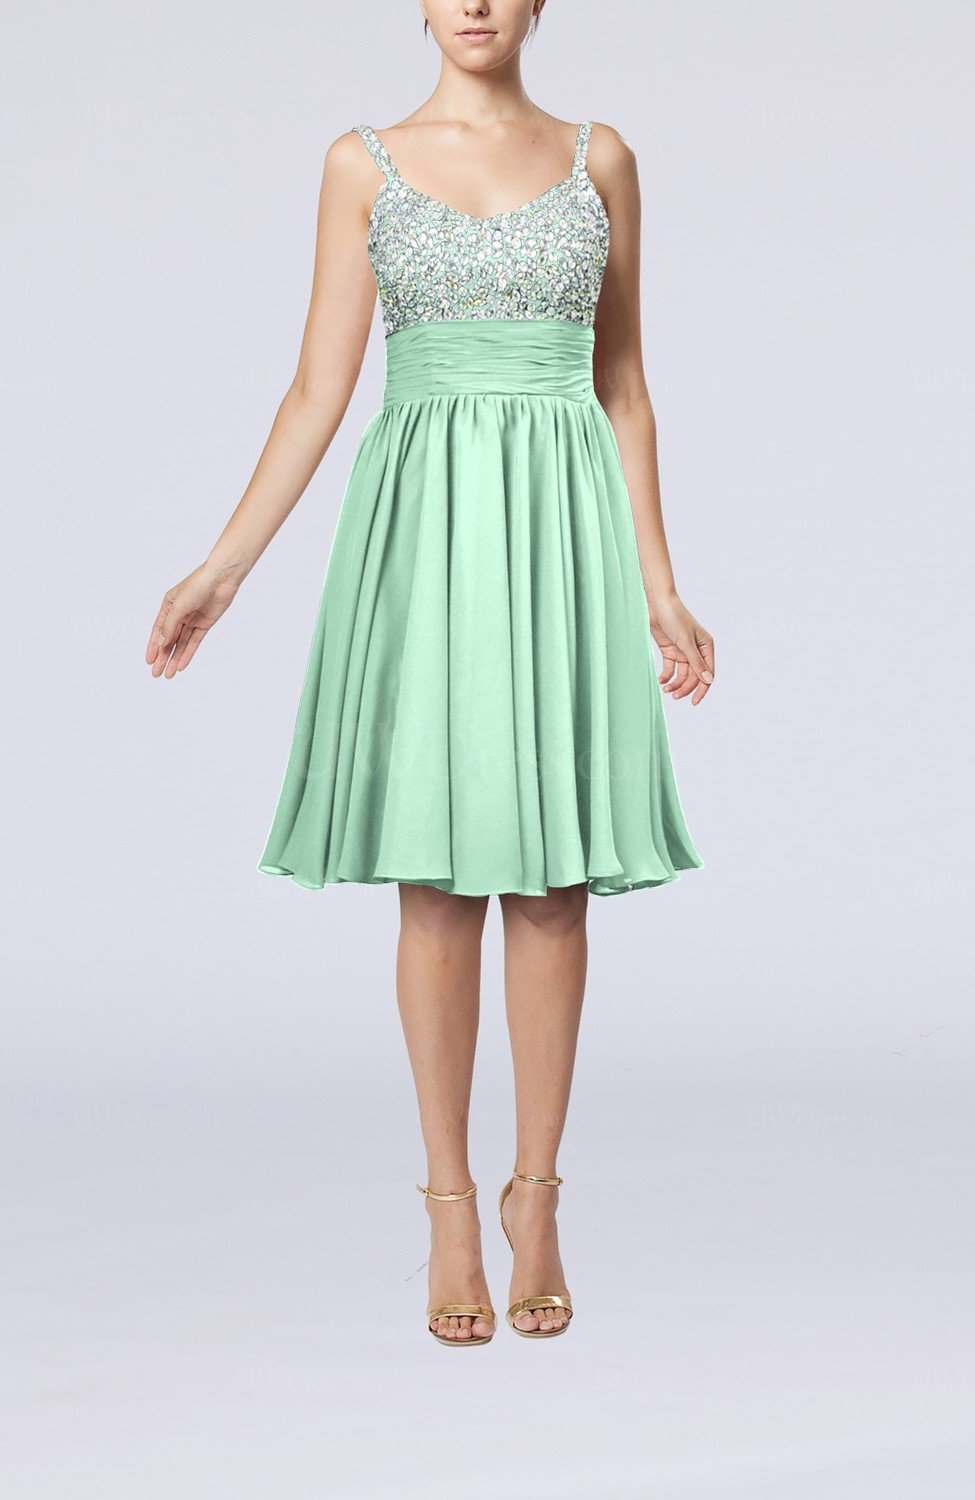 b1200fbd806 Honeydew Modest Thick Straps Sleeveless Chiffon Beaded Cocktail ...